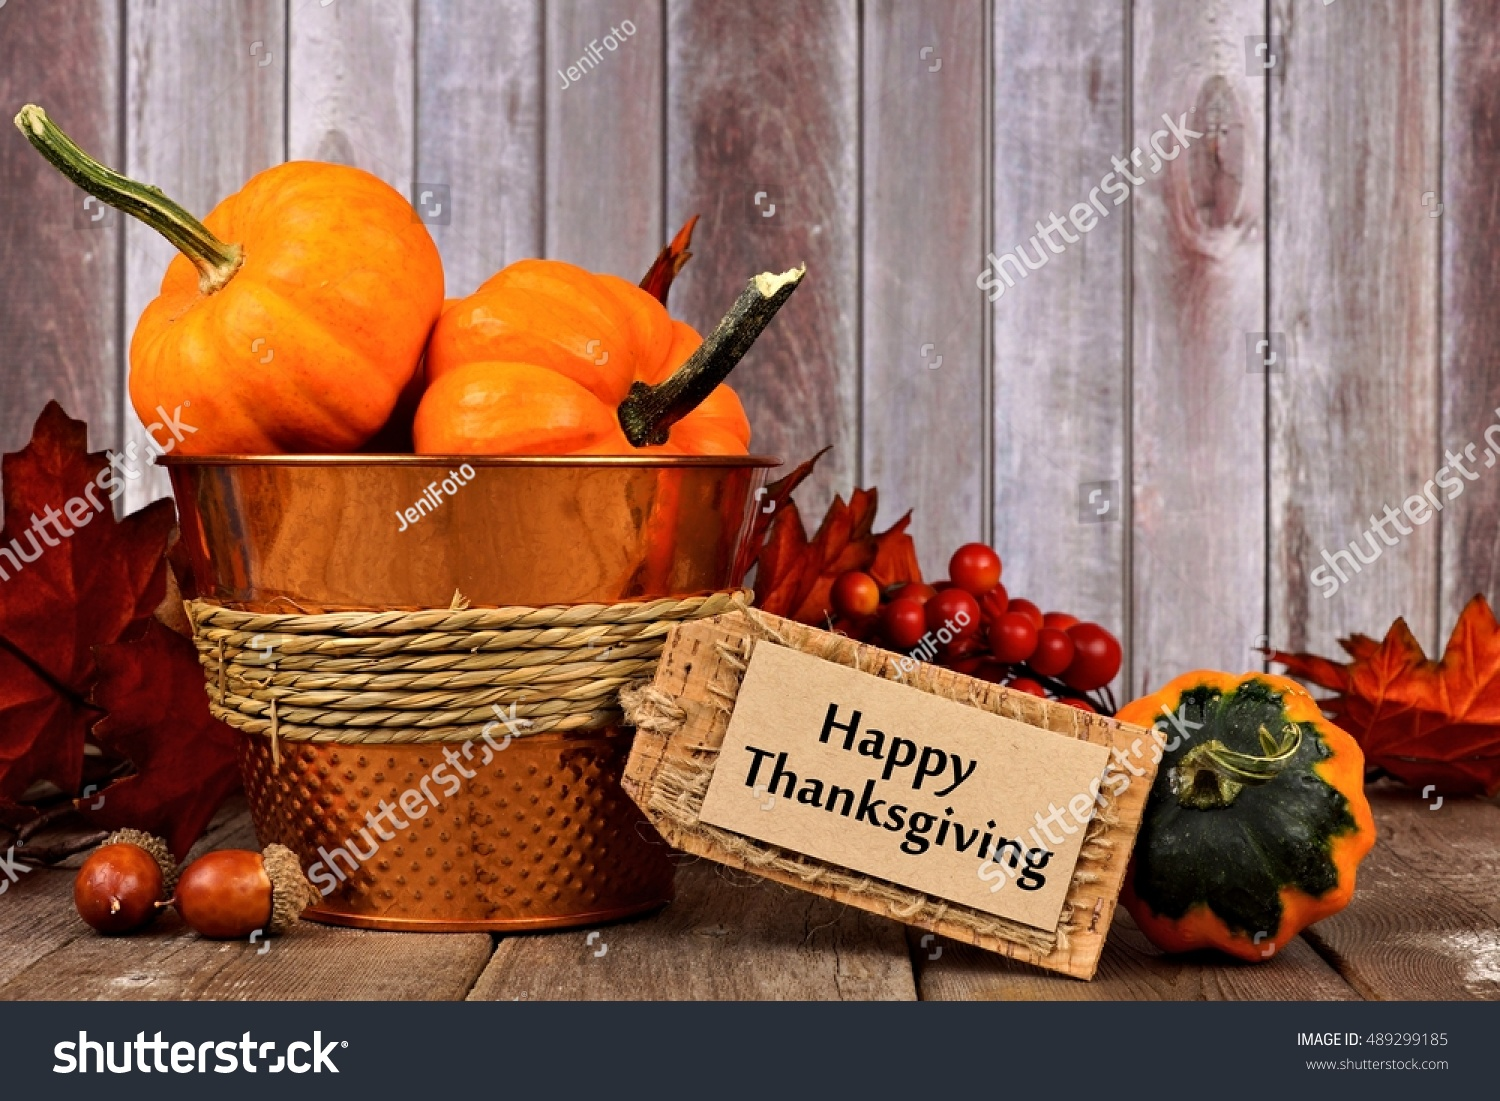 Happy Thanksgiving Tag Pumpkins Leaves And Autumn Home Decor With Rustic Wood Background